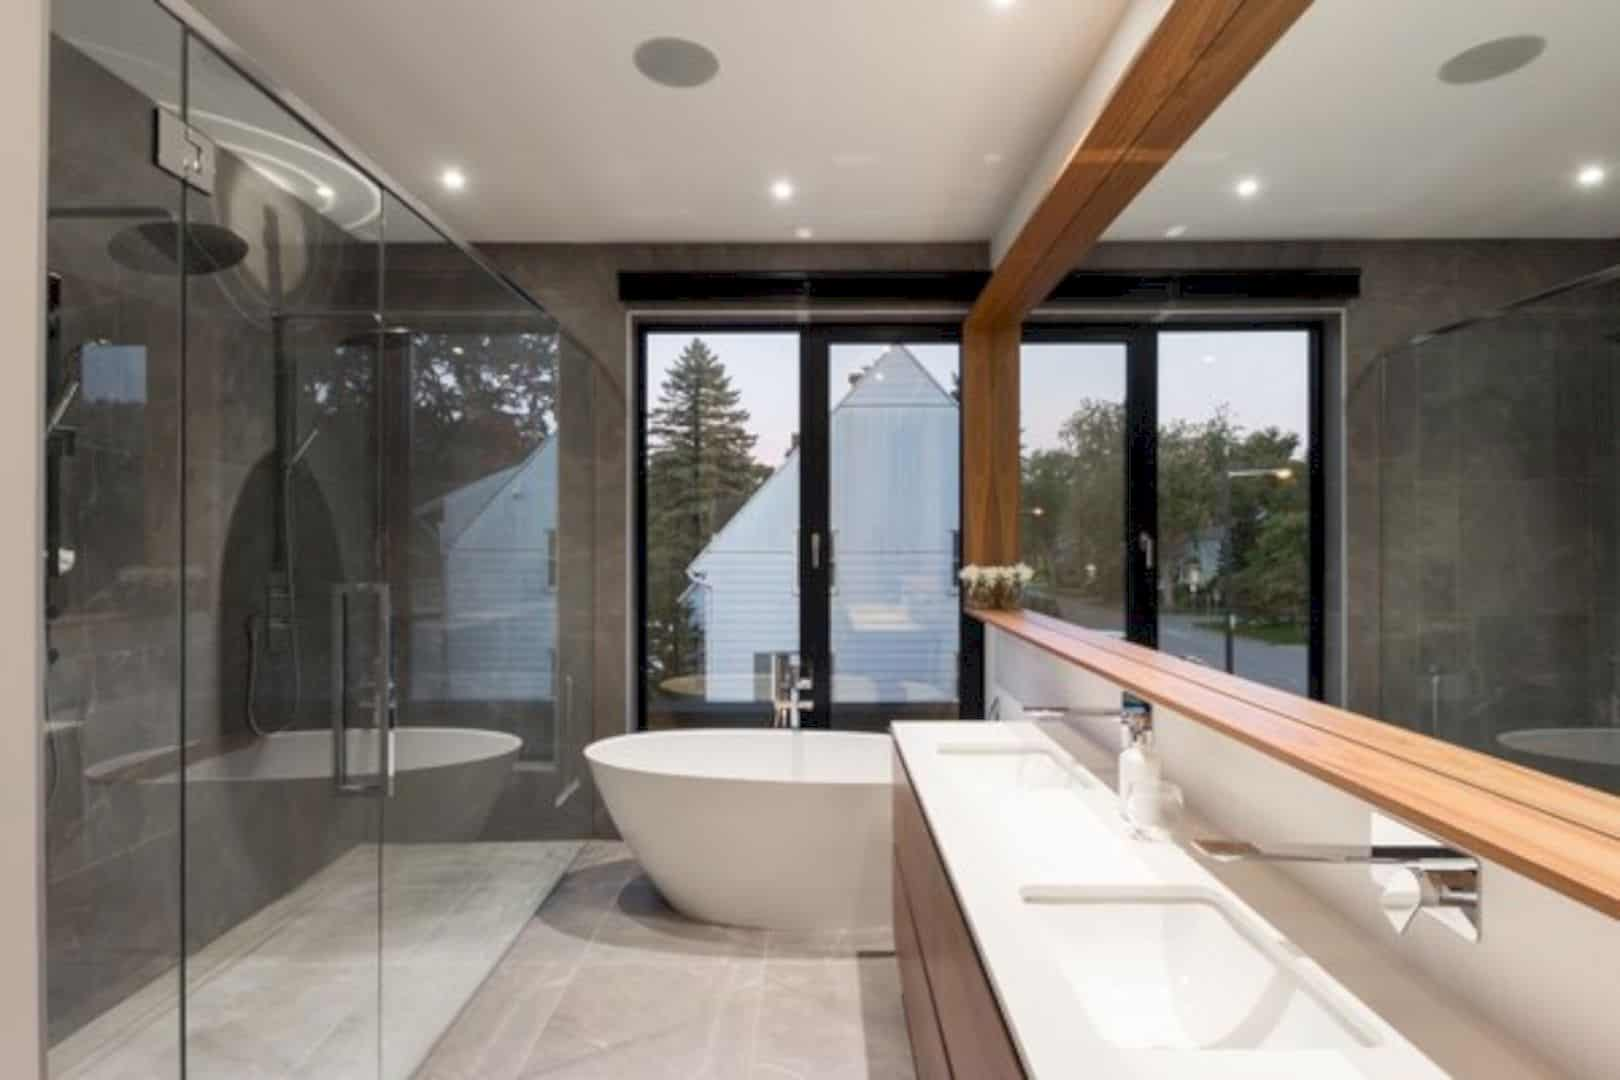 Oak Residence A Modern And Minimalist Home With Natural Materials 1